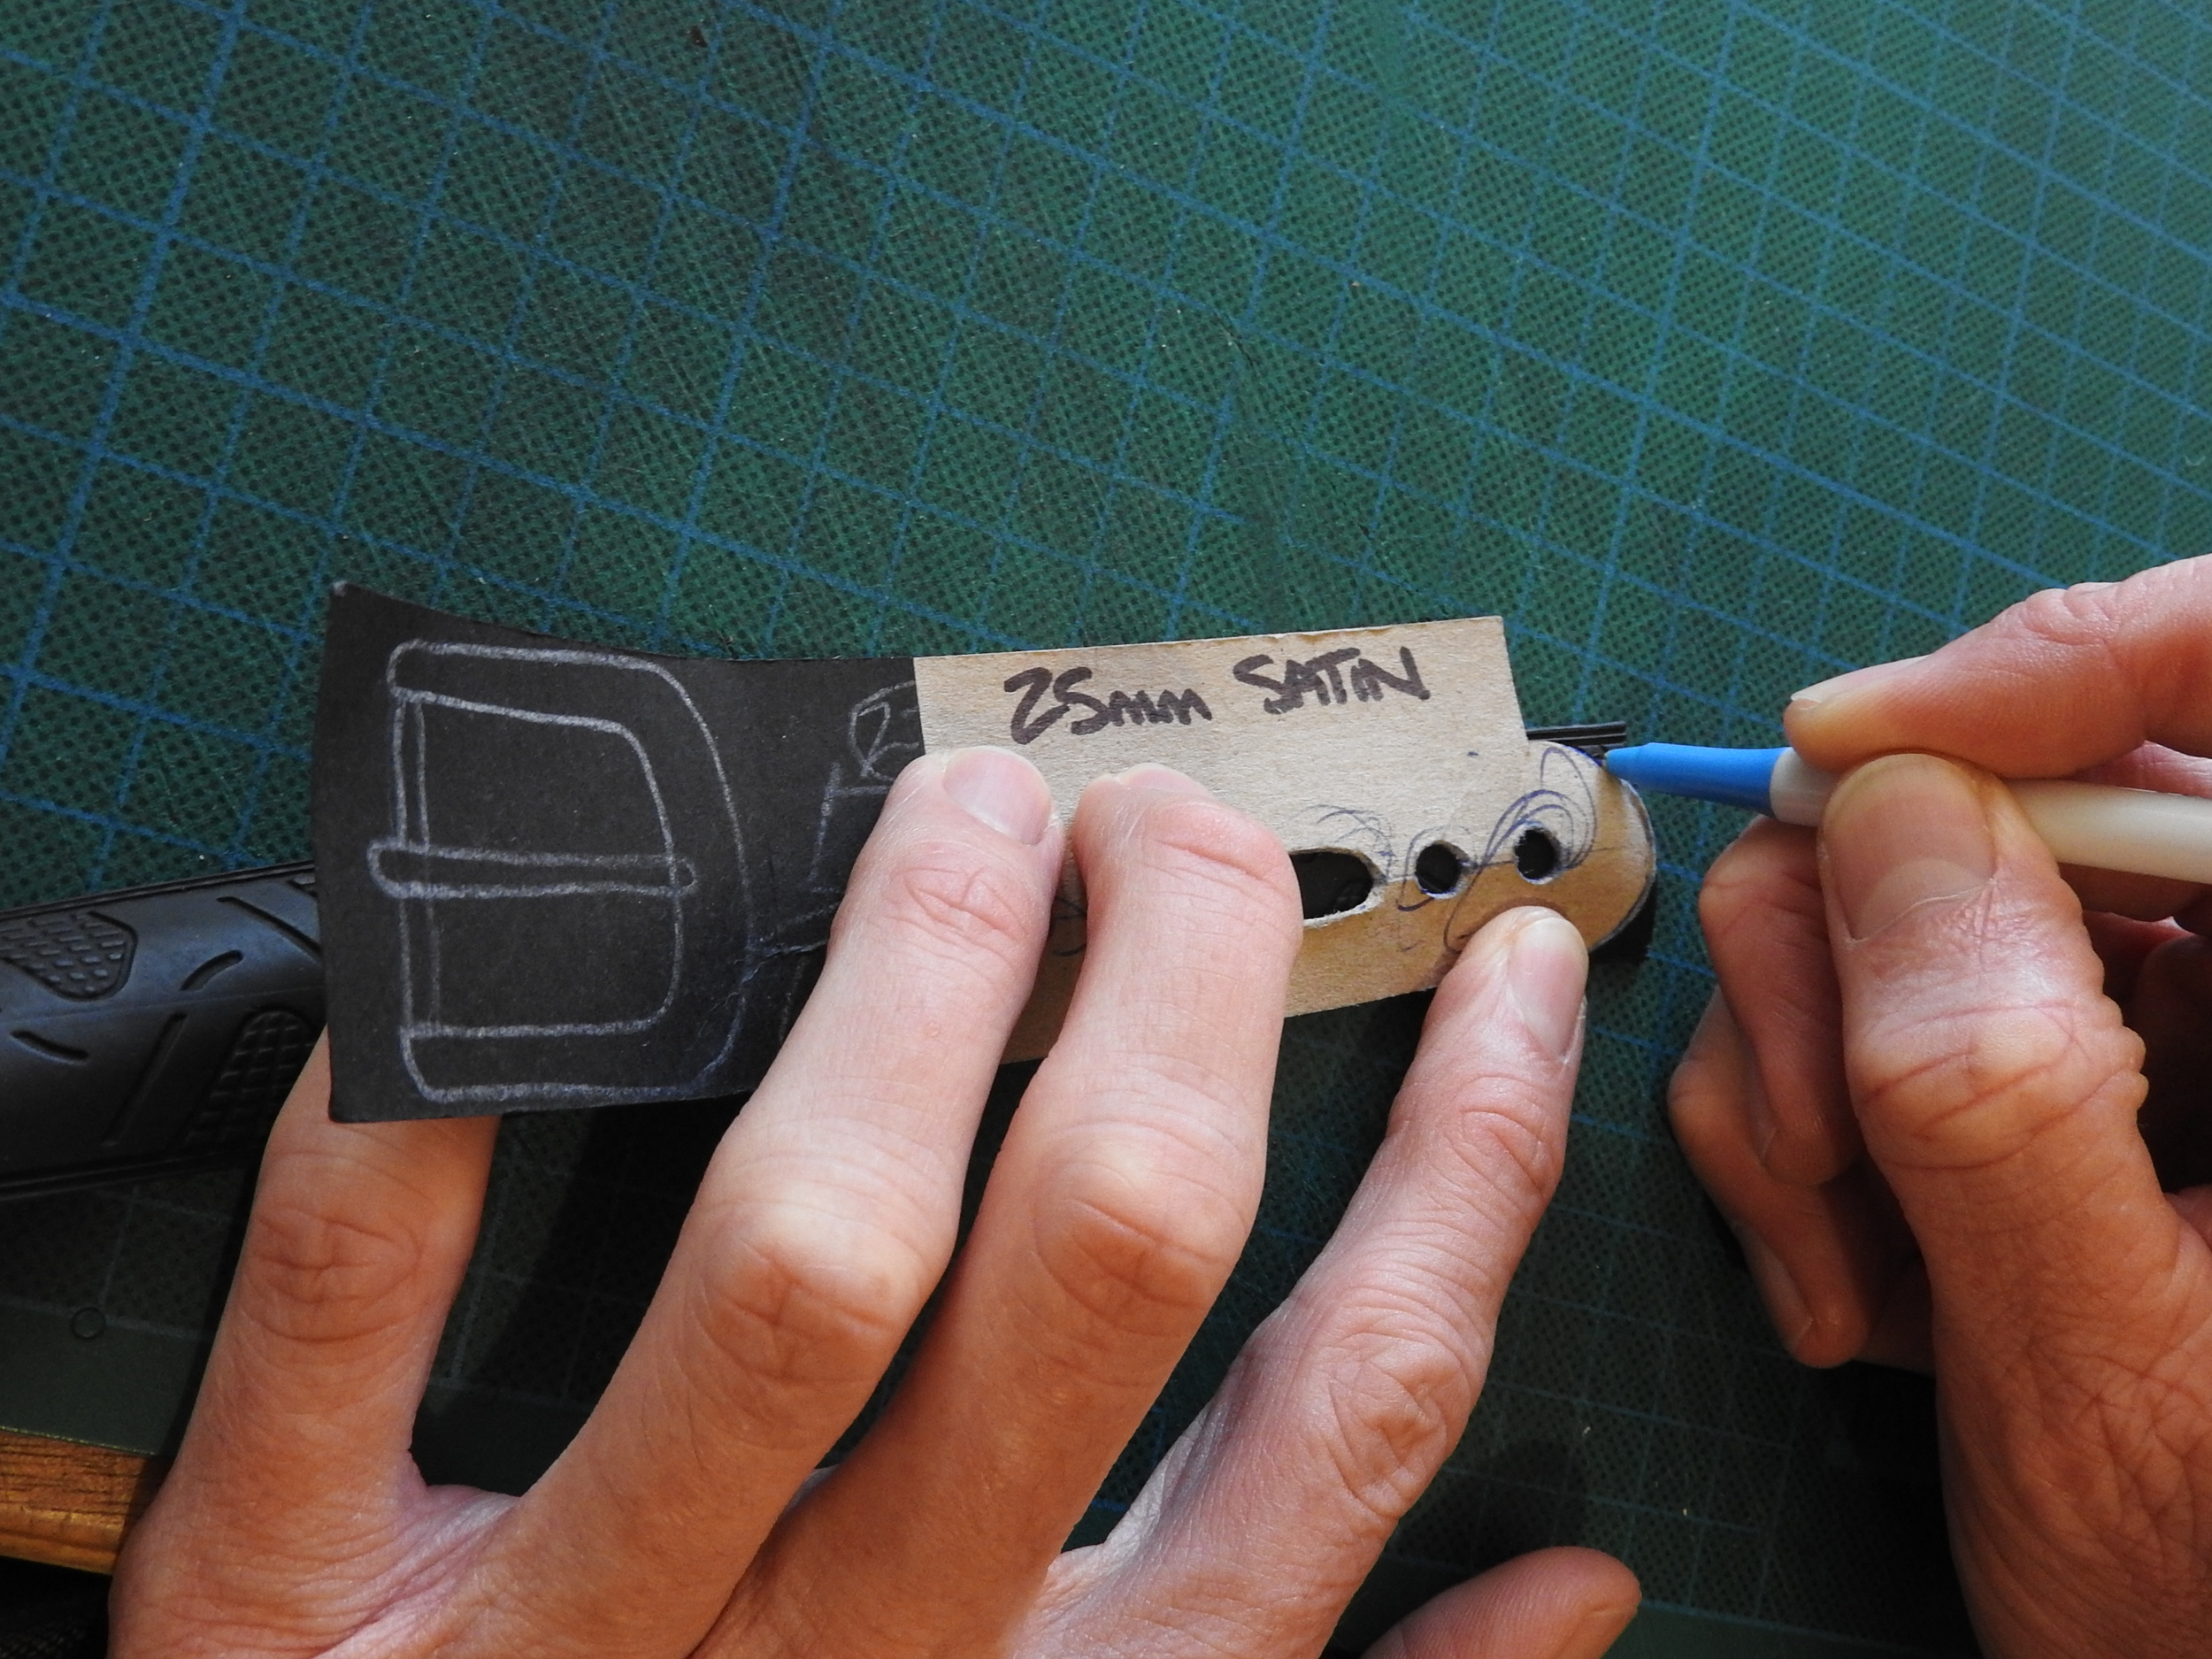 Templates make sure every belt is precisely marked.